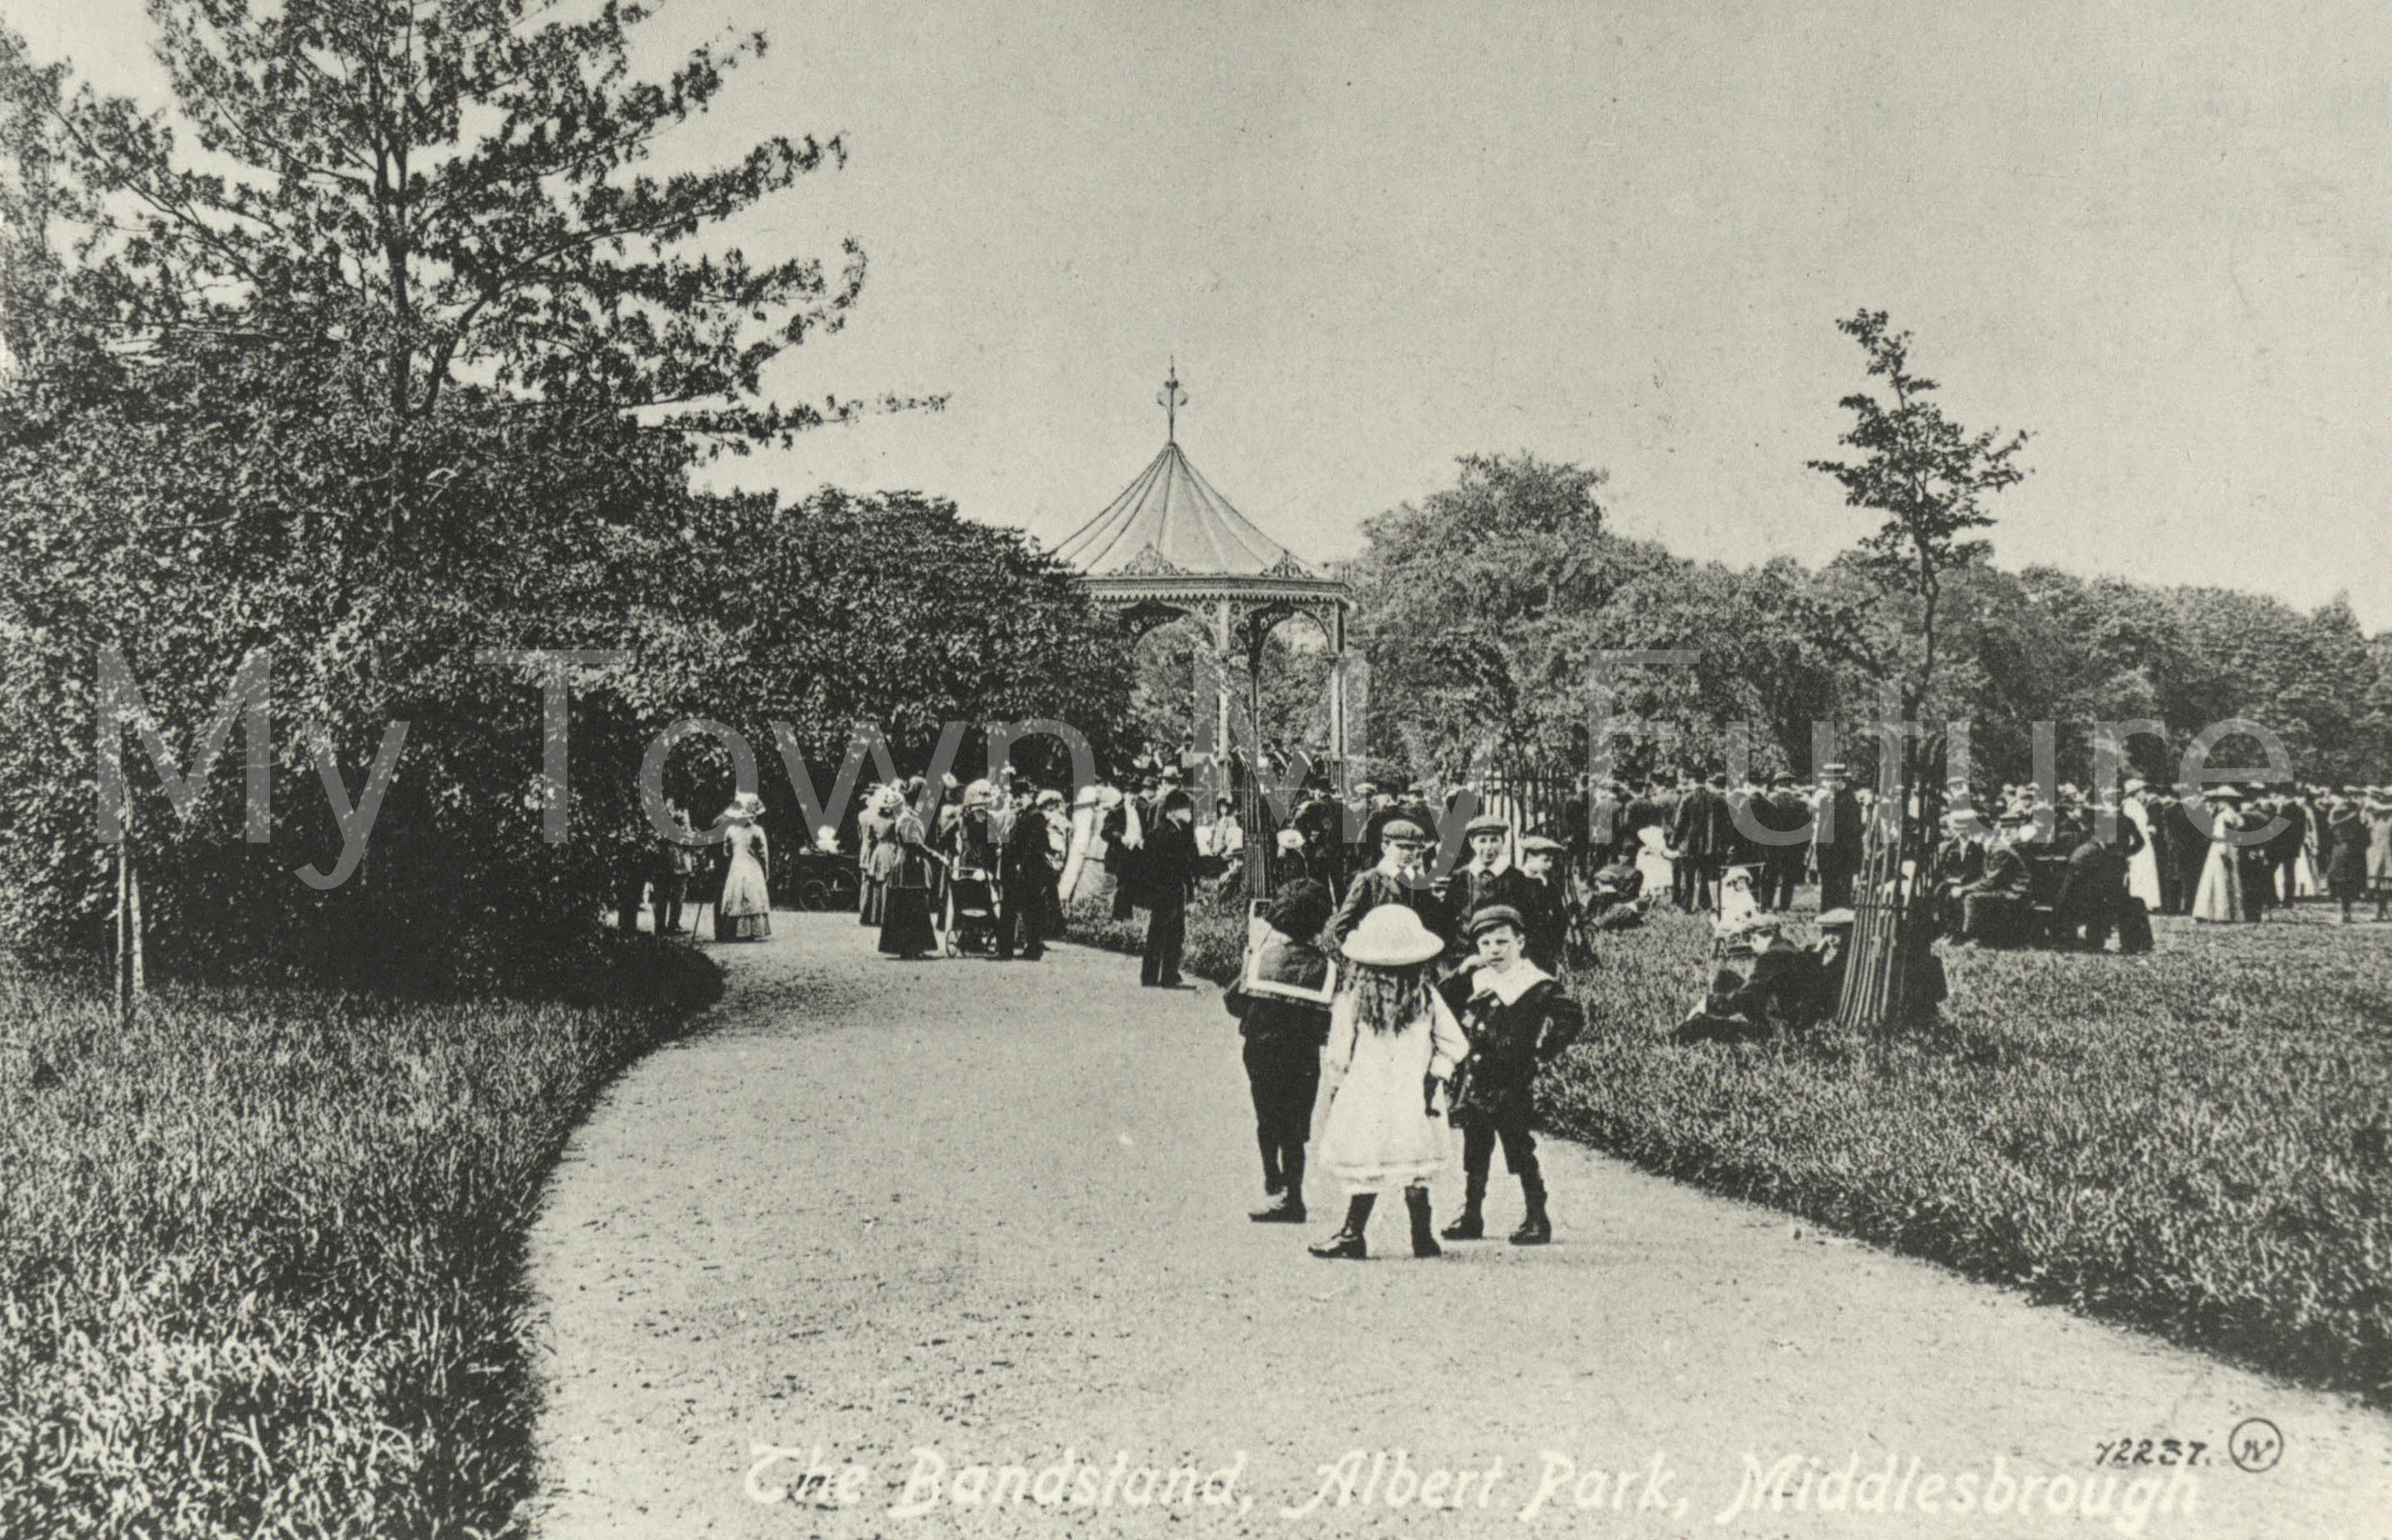 Albert Park - Bandstand, Dept. of Planning - Cleveland County Council